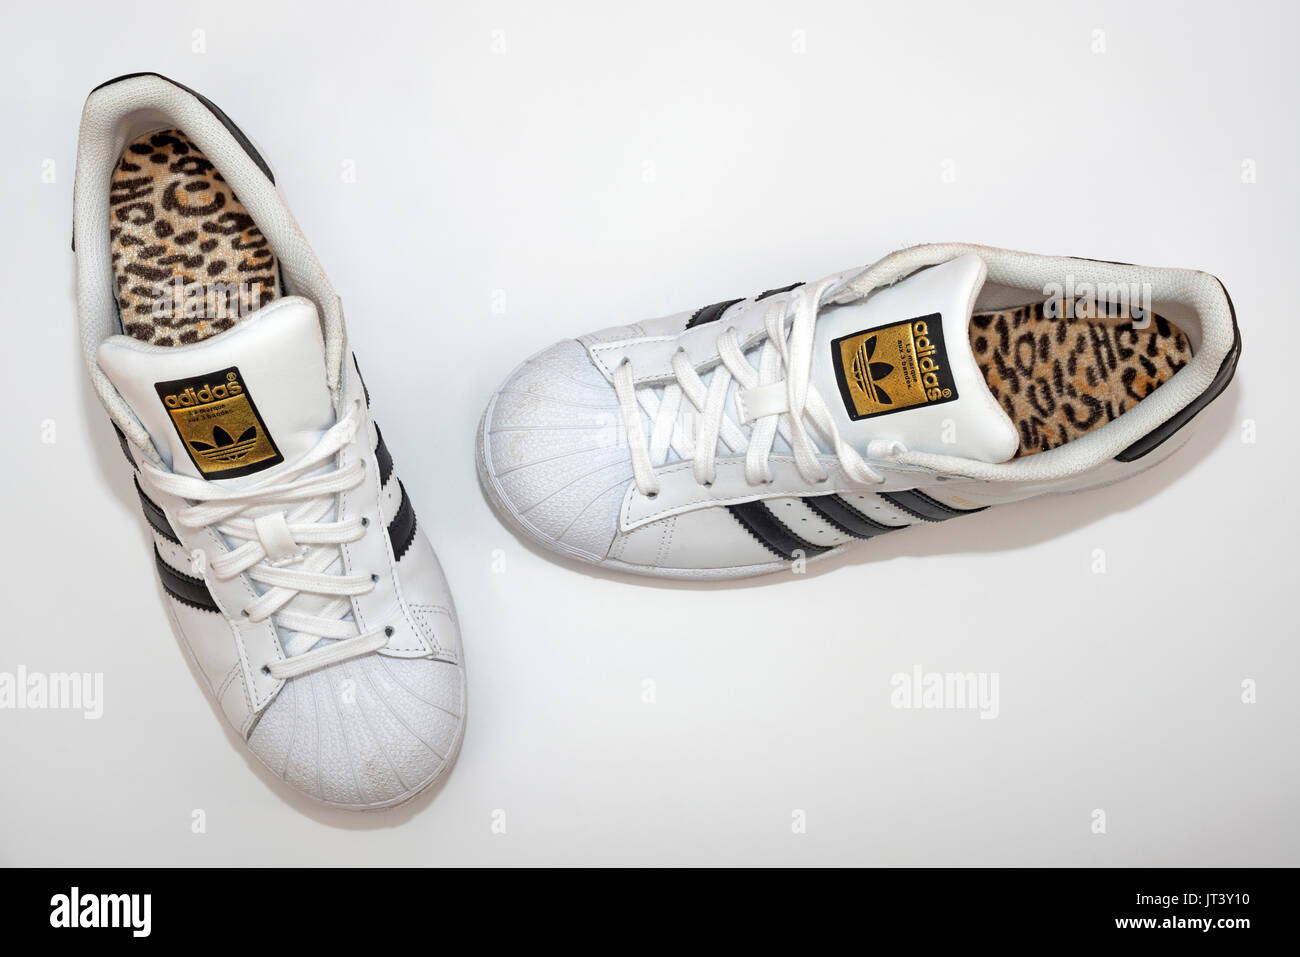 quality design d2828 aad72 Adidas Superstar formateurs Photo Stock